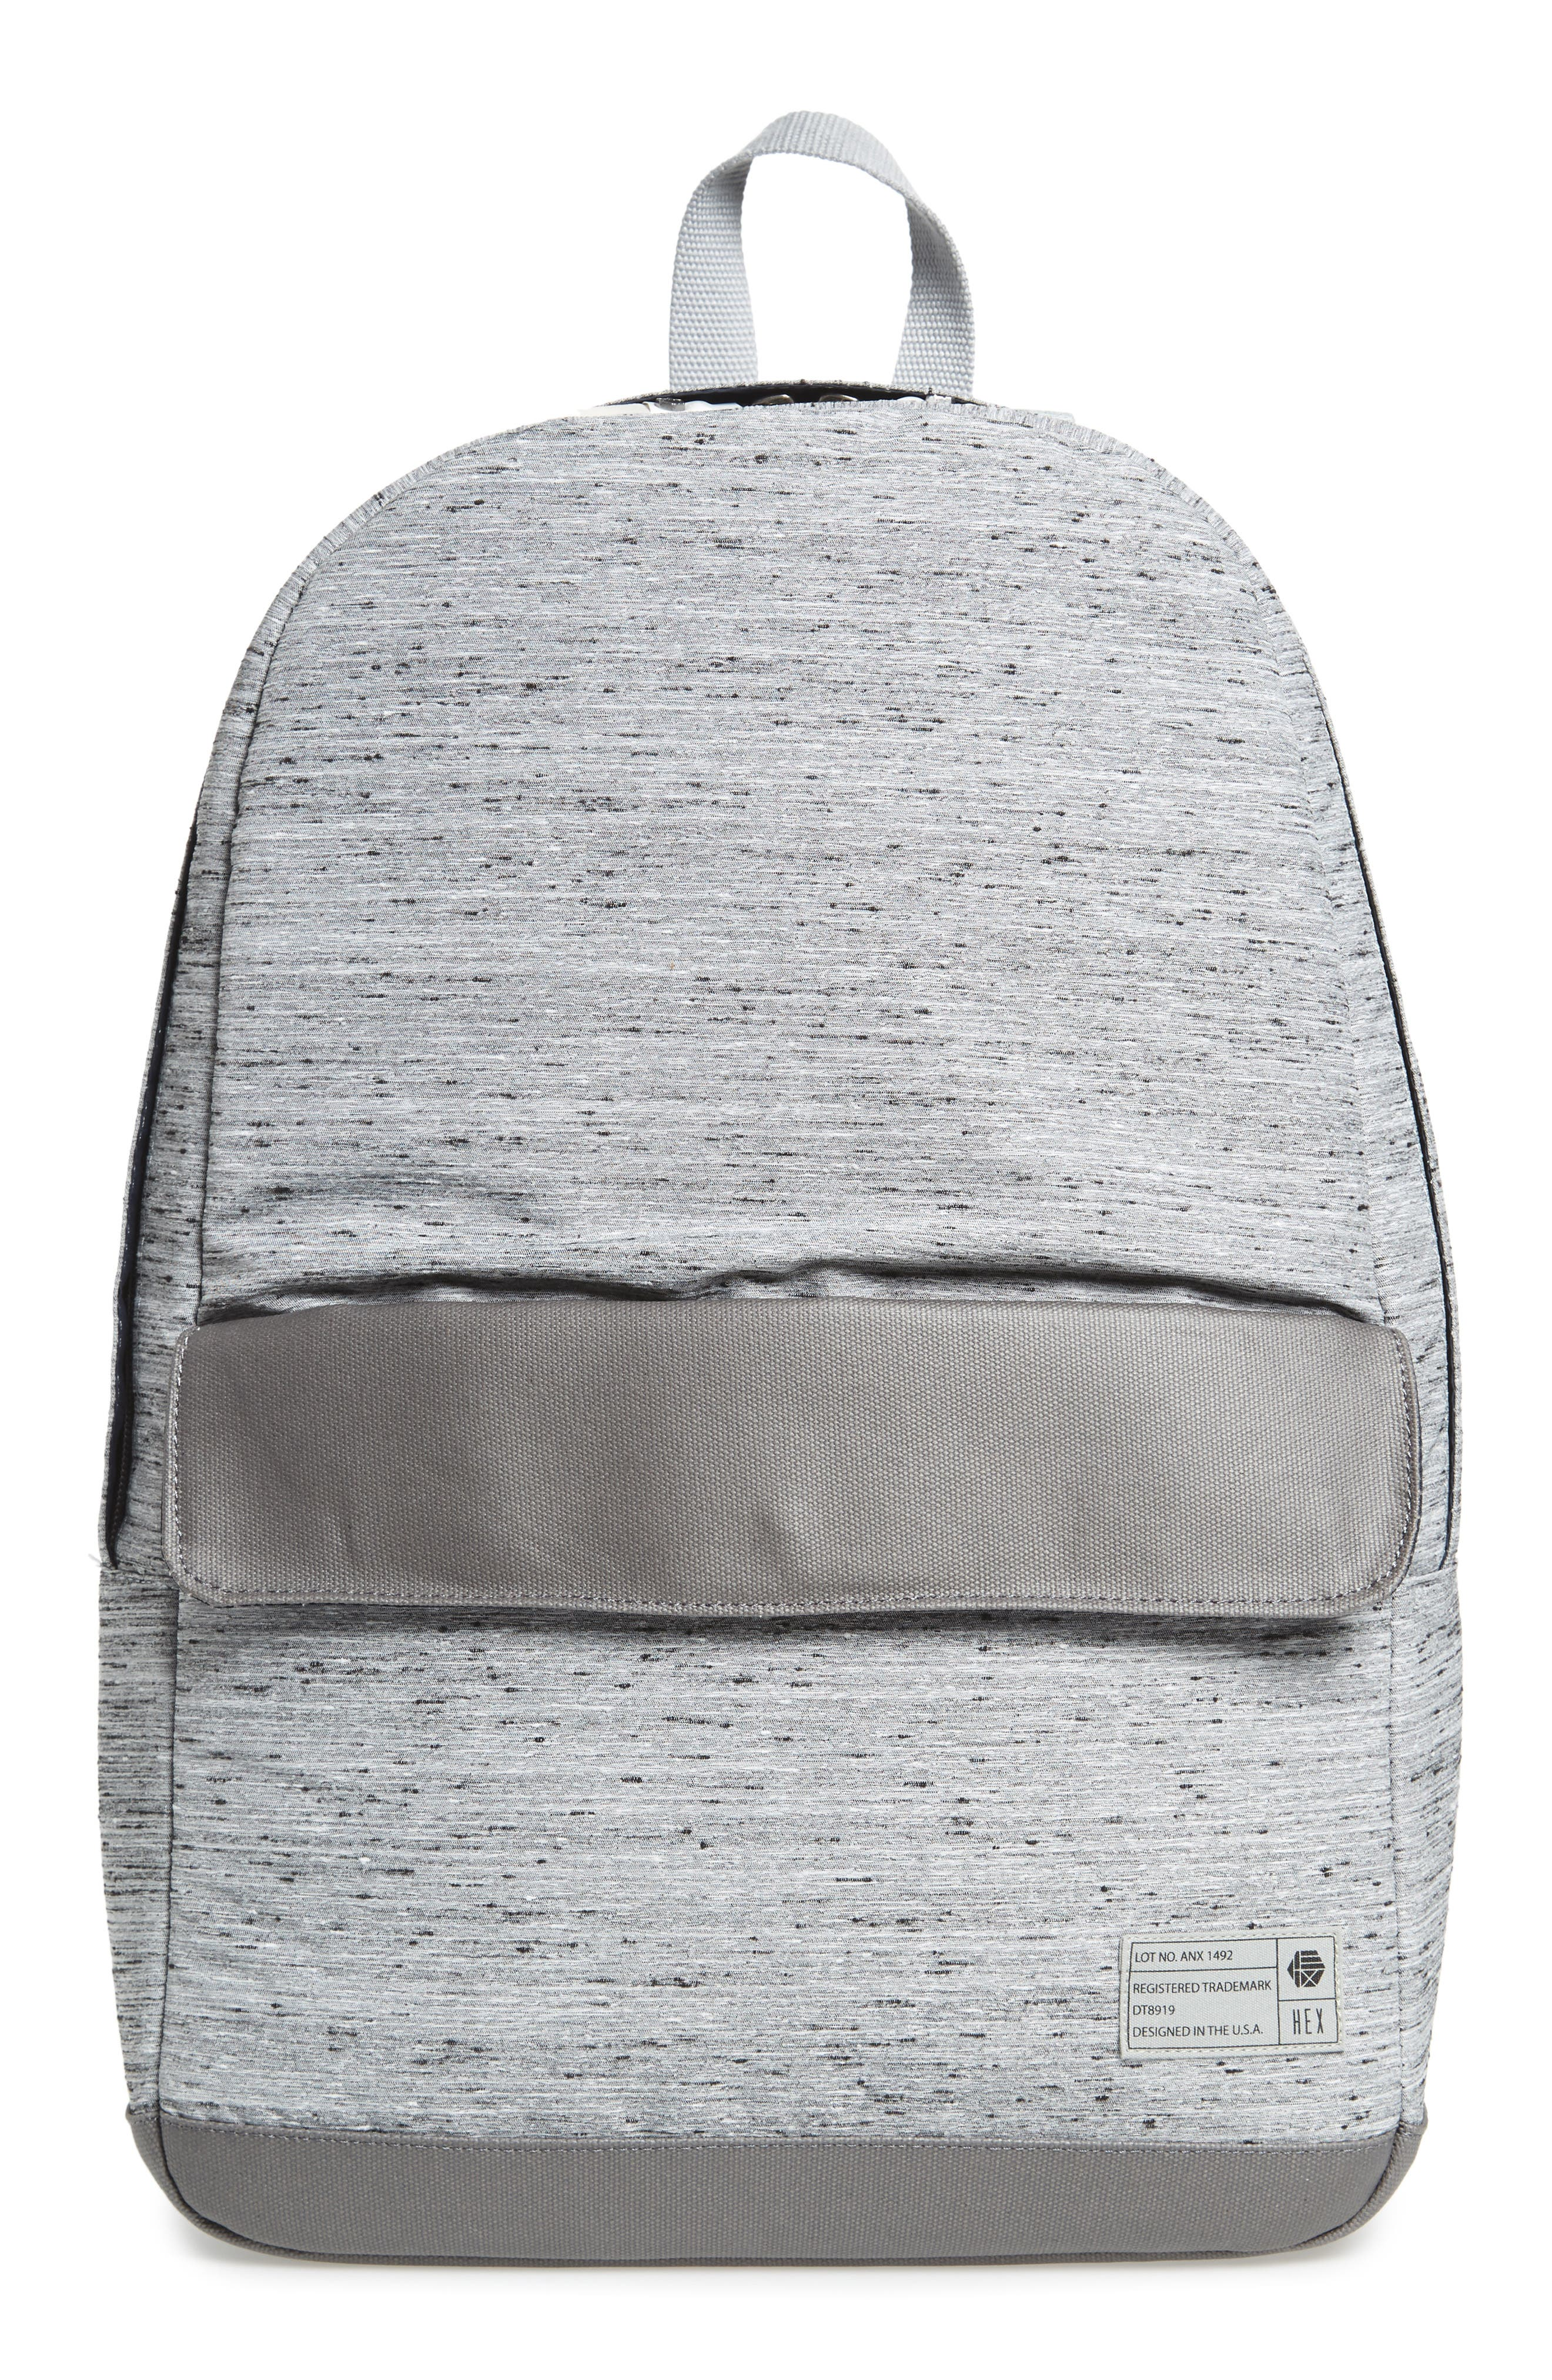 'Echo' Backpack,                         Main,                         color, Annex Grey Slub